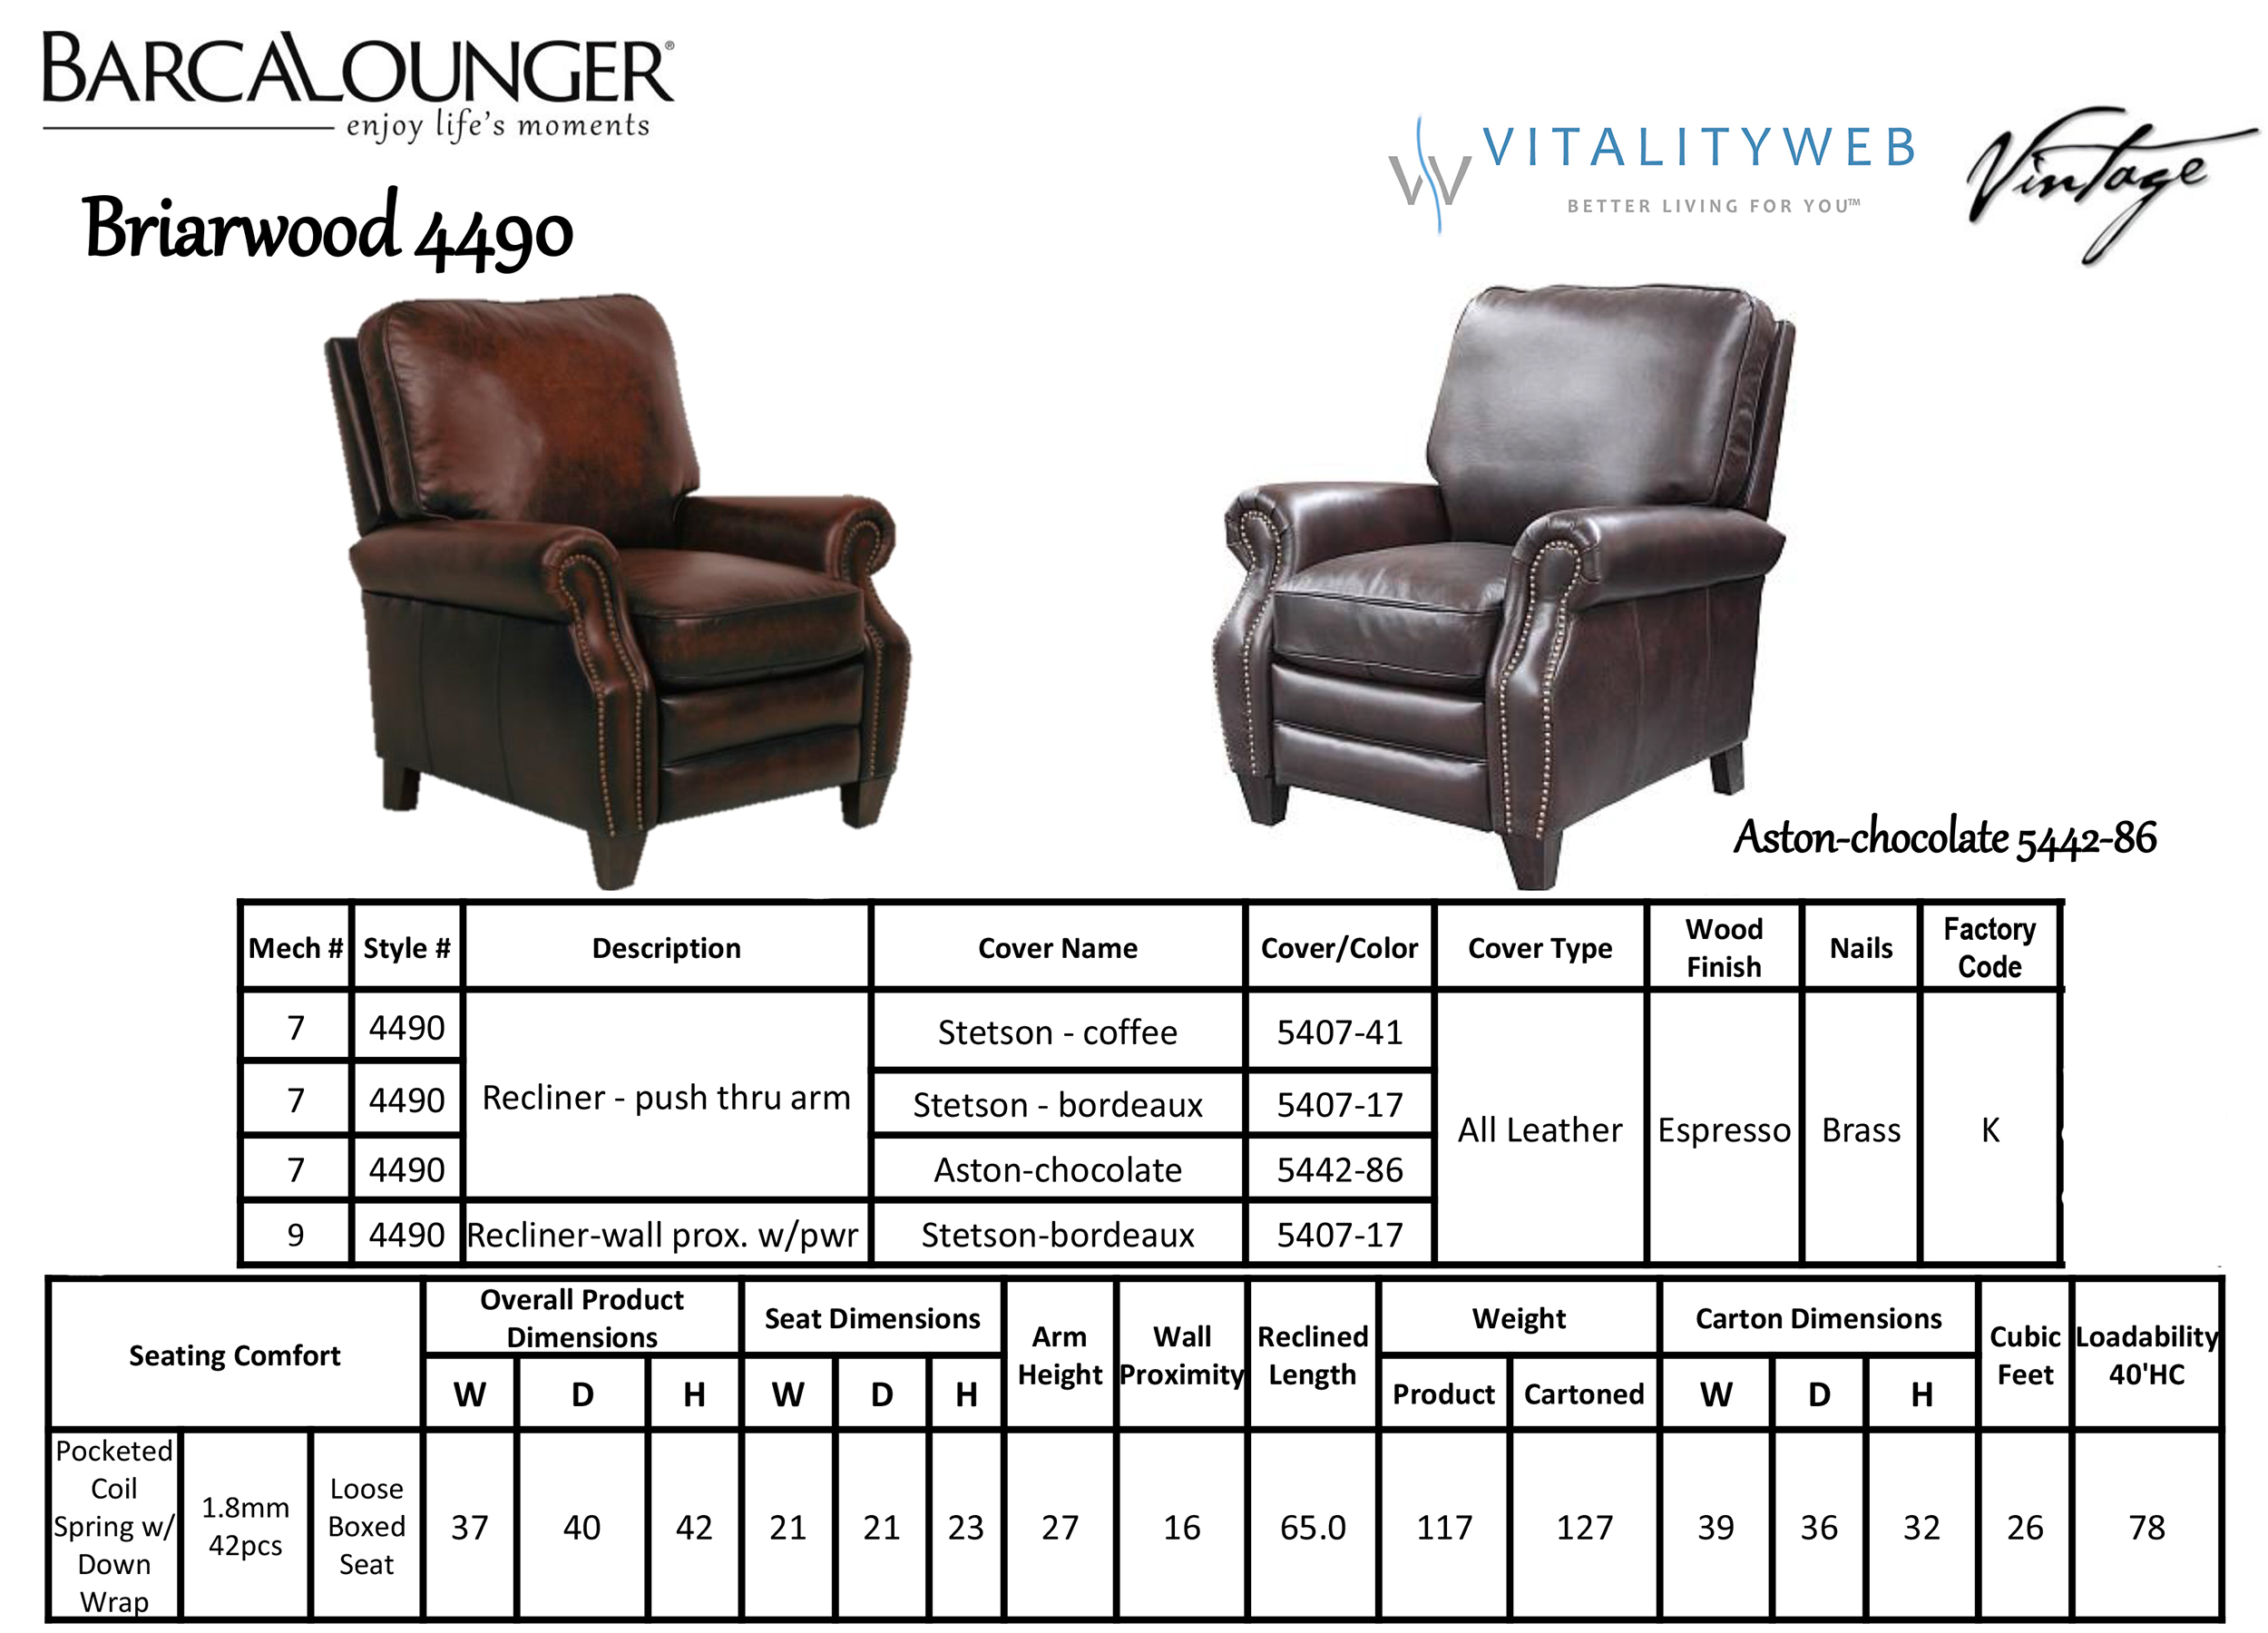 Barcalounger Briarwood 4490 Leather Recliner Chair Dimensions